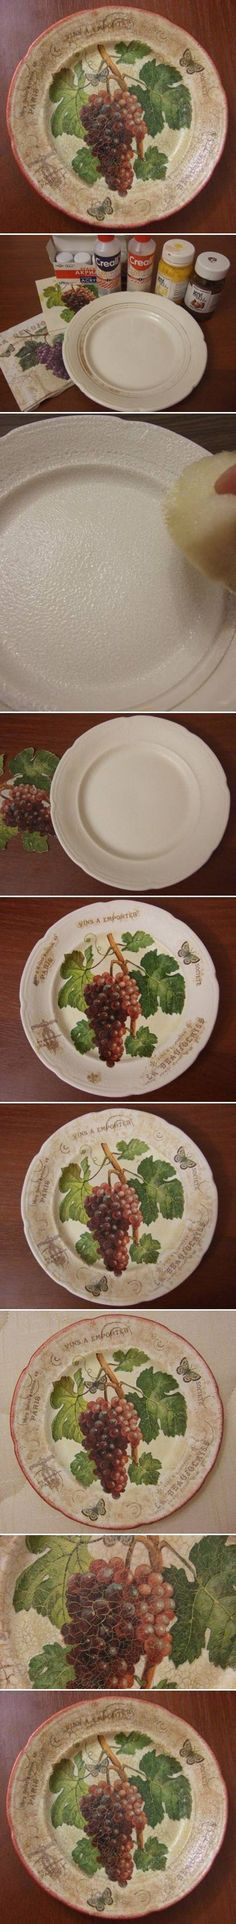 DIY Old Plate Decoupage // ♡ BEAUTIFUL JOB! LOVE THE WAY THEY DID THE RIM, AND THE CRACKLING WAS A PERFECT WAY TO FINISH IT! ♥A